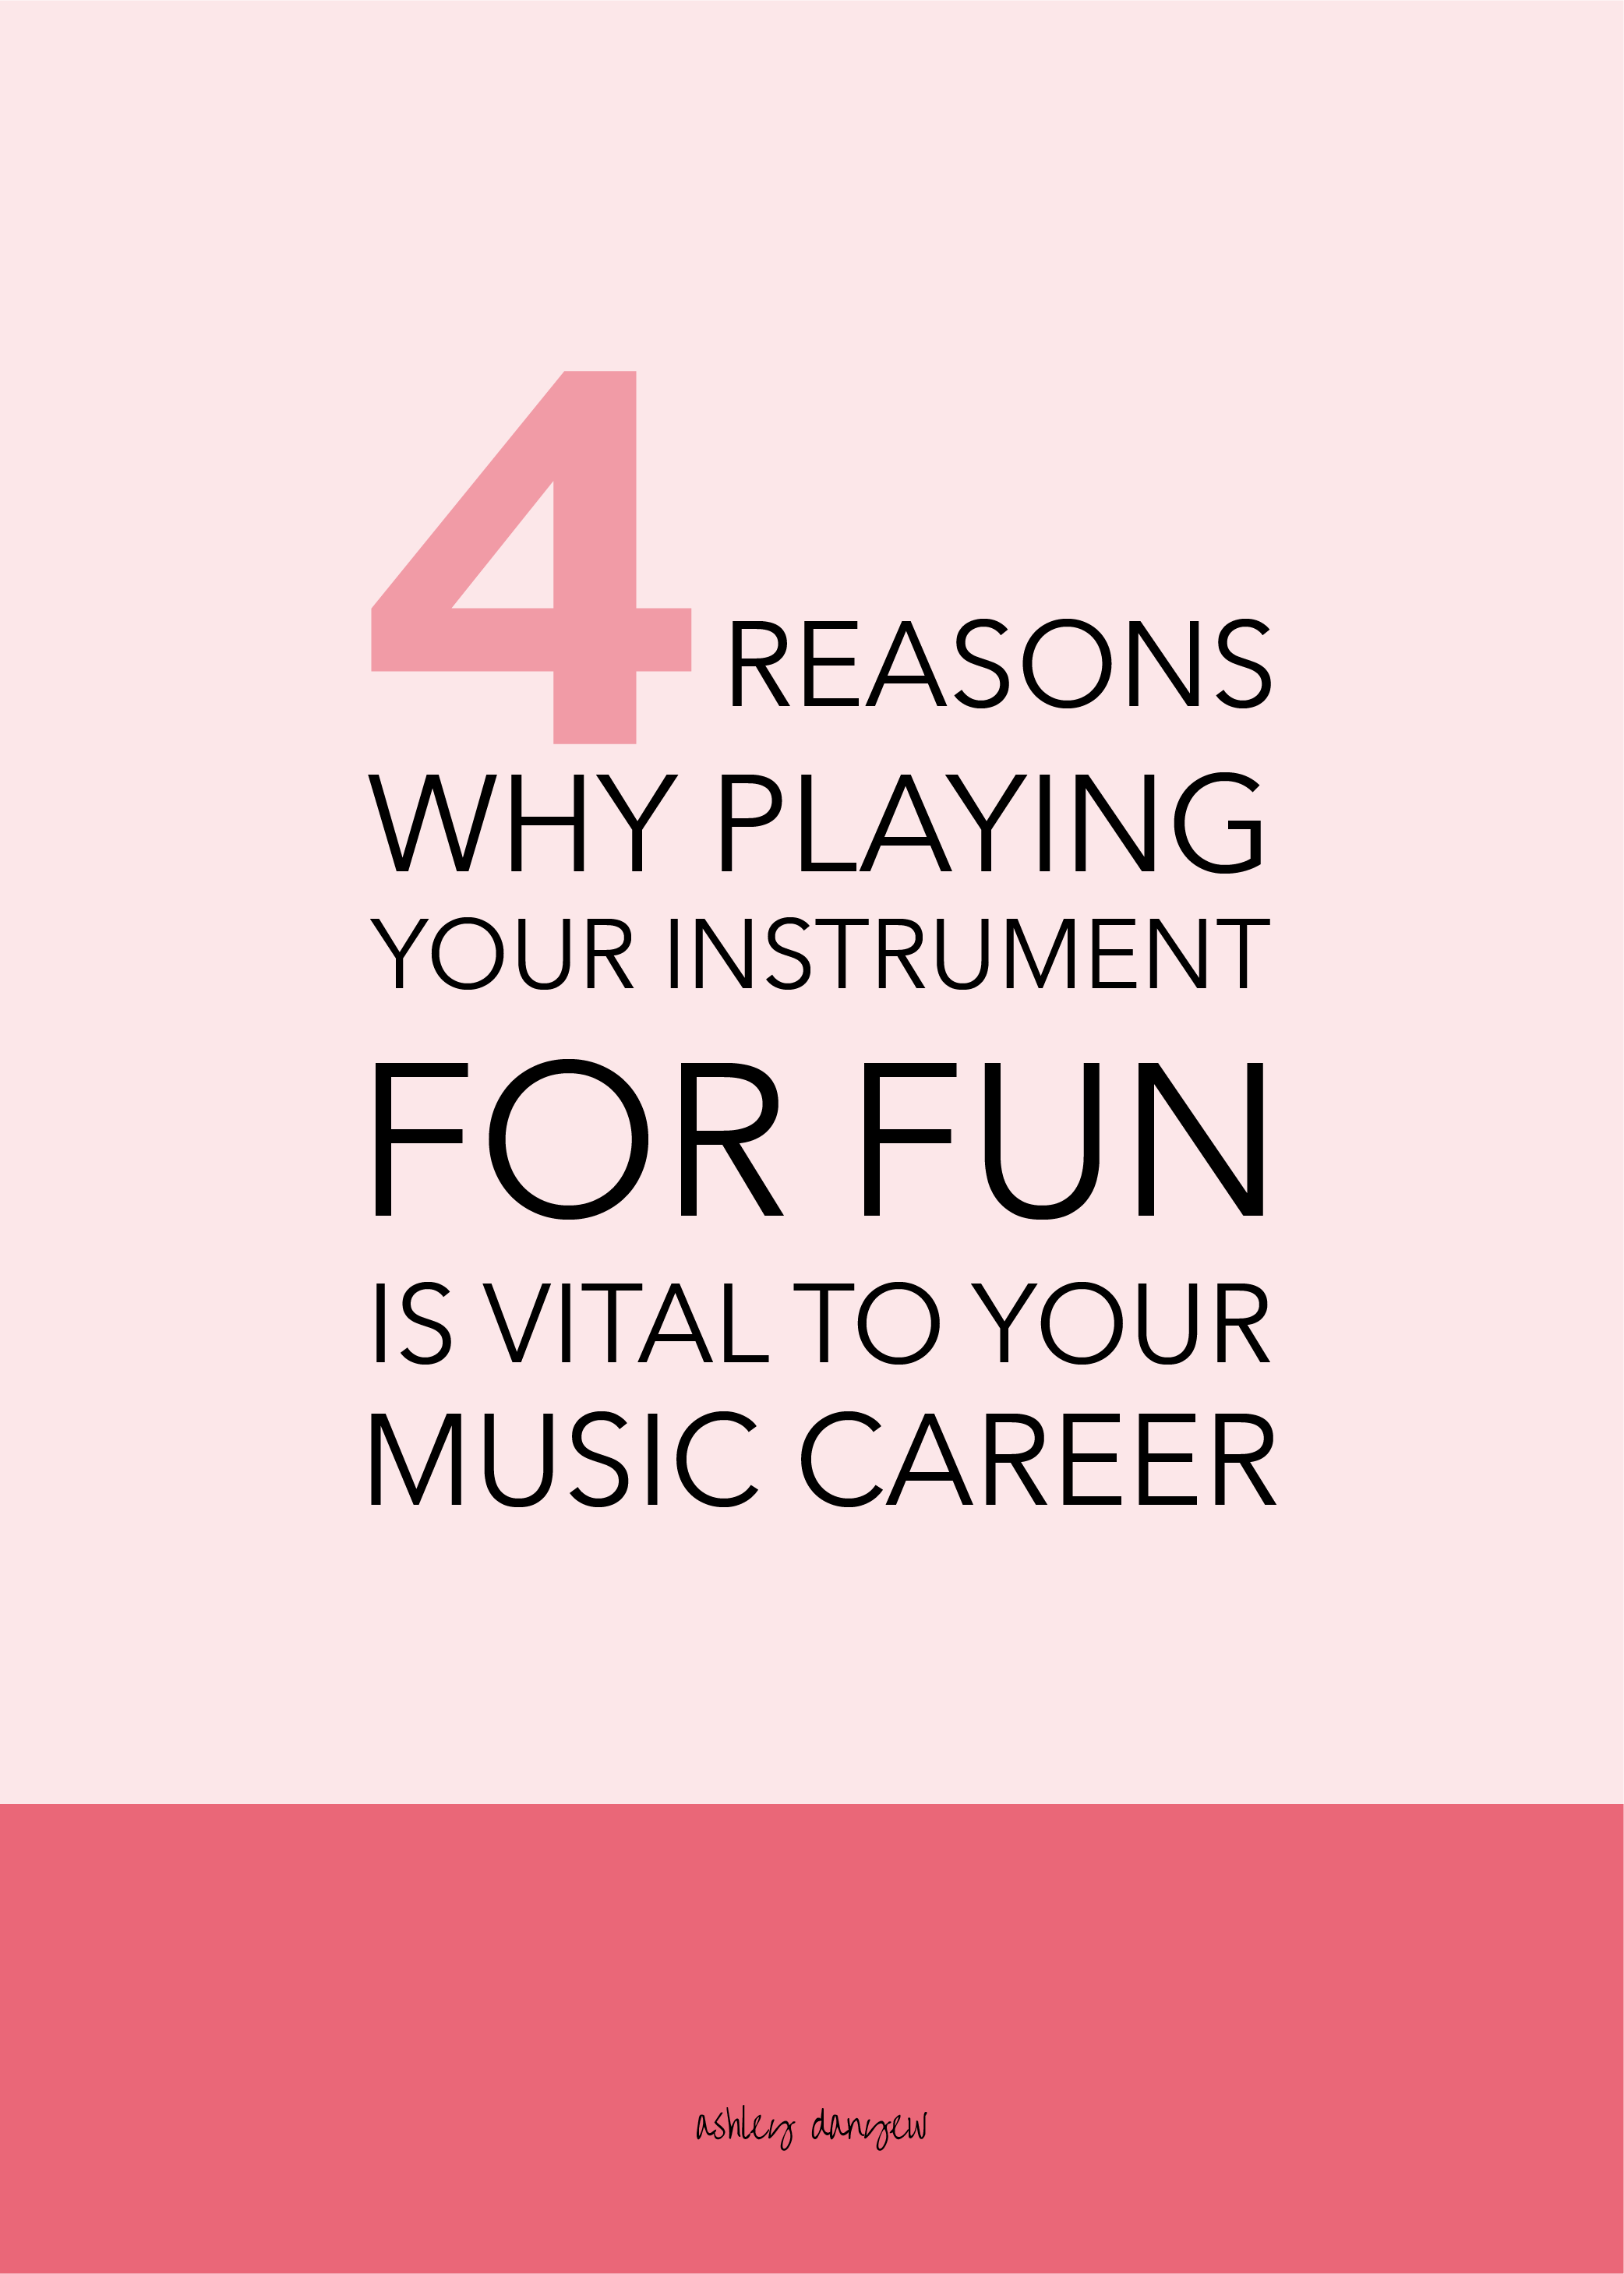 Four Reasons Why Playing Your Instrument for Fun is Vital to Your Music Career-58.png